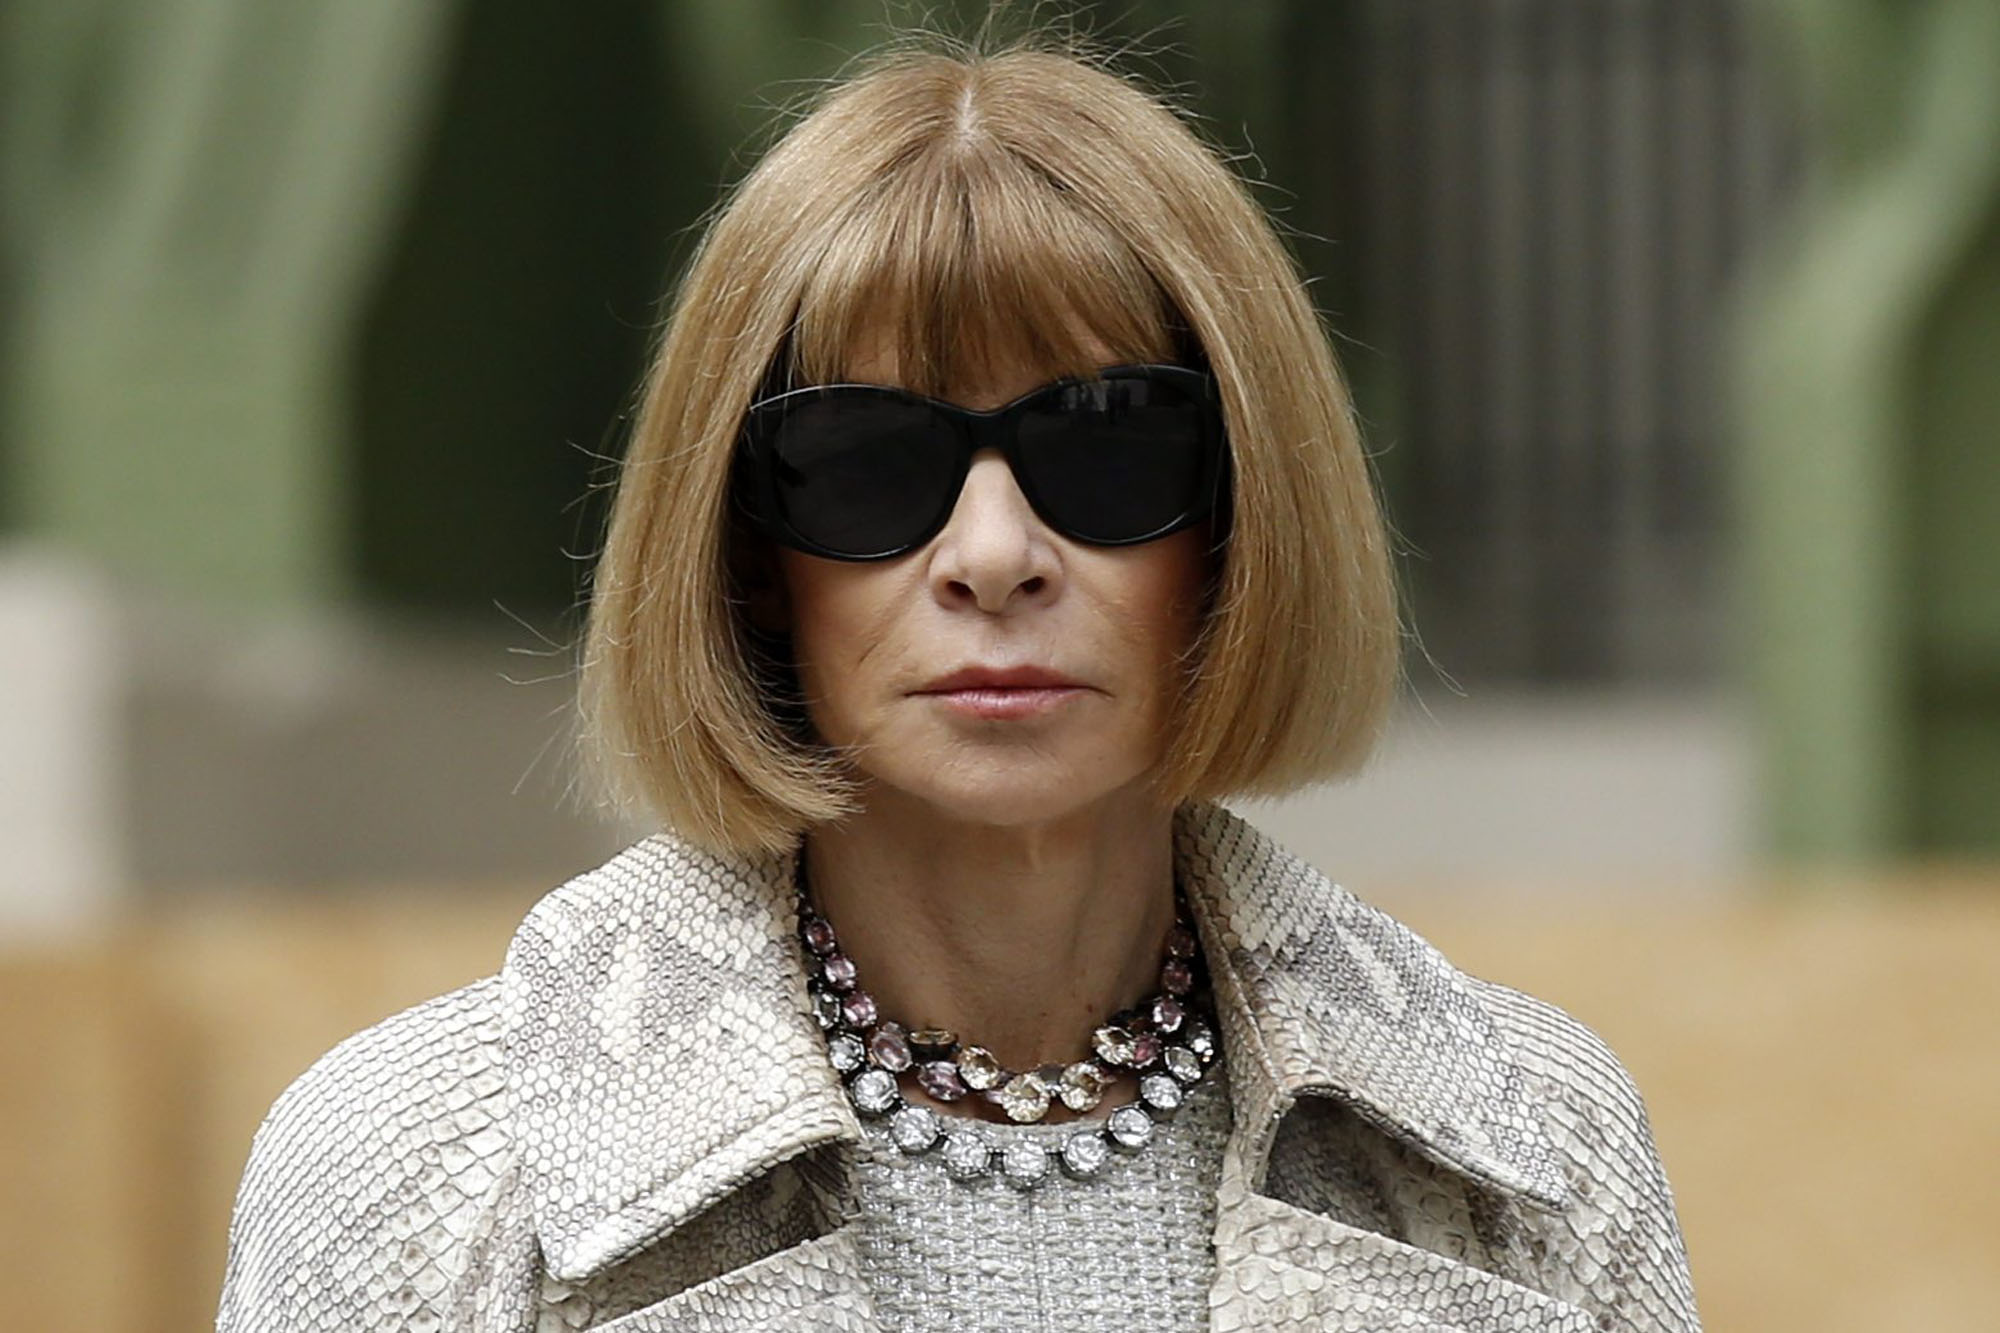 Editor-in-chief of American Vogue Anna Wintour arrives at German designer Karl Lagerfeld's Haute Couture Fall/Winter 2014-2015 fashion show for French fashion house Chanel in Paris